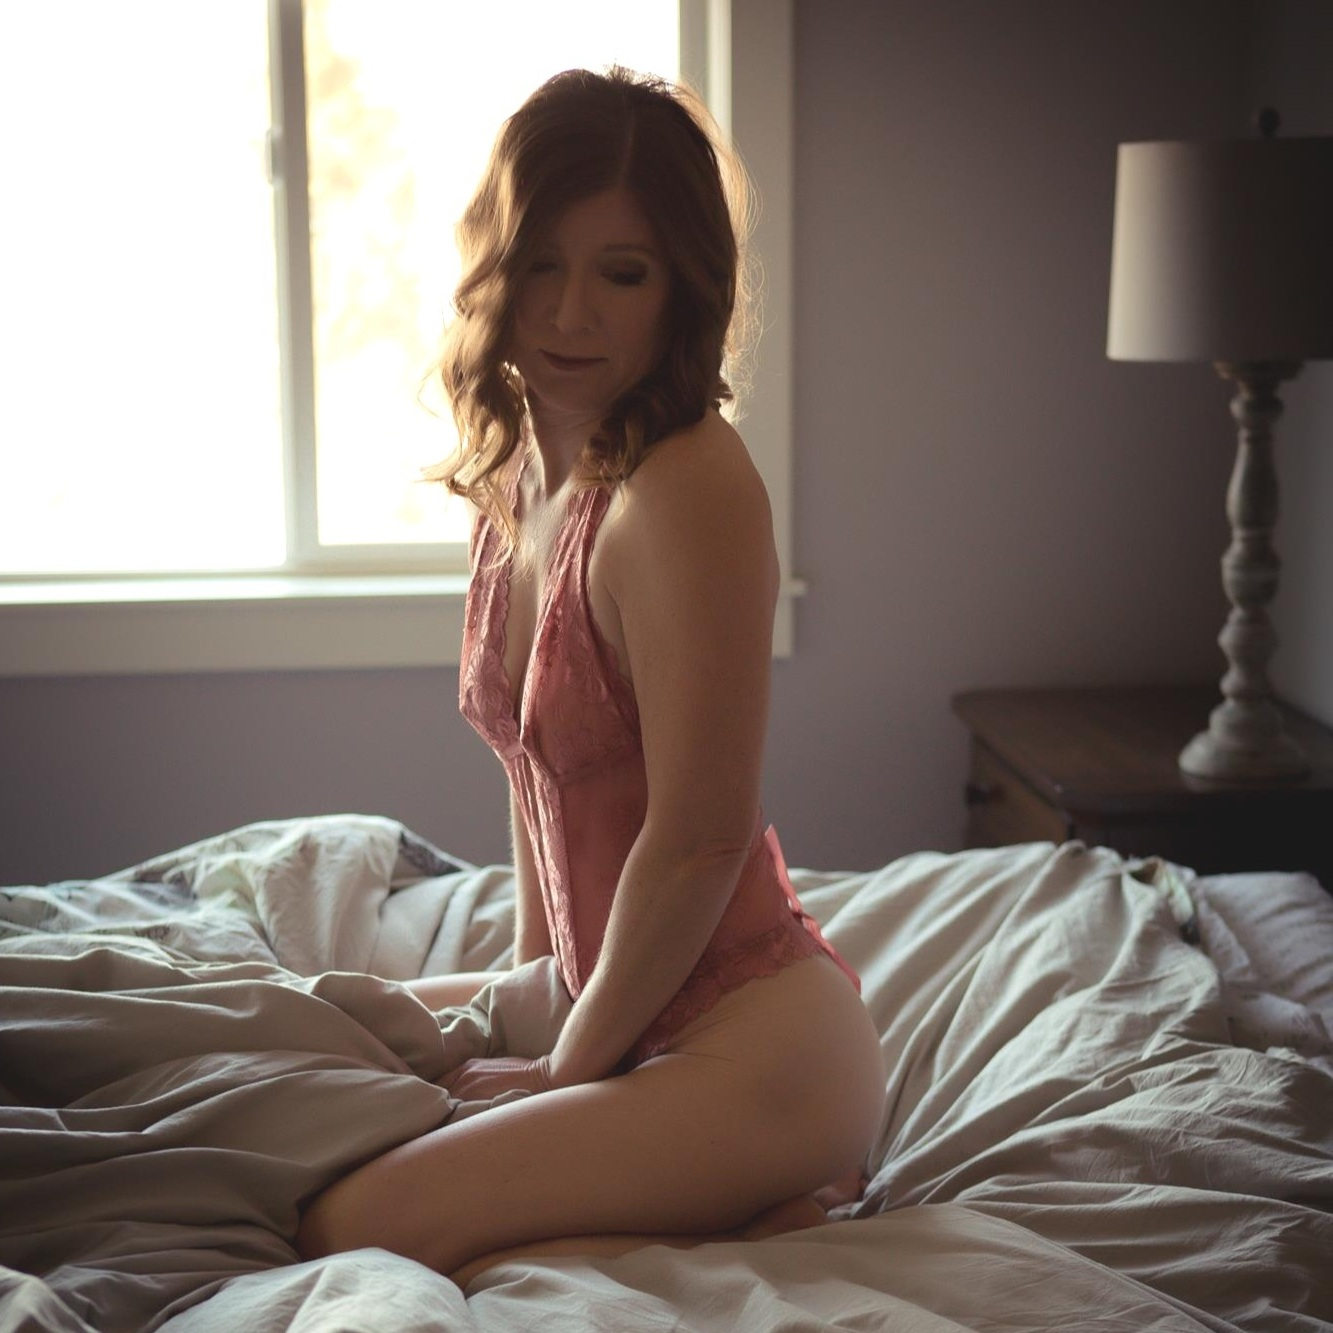 Boudoir Inspiration: Woman in peach colored lingerie.  Boudoir Photo by Misty Boles Intimate Photography.